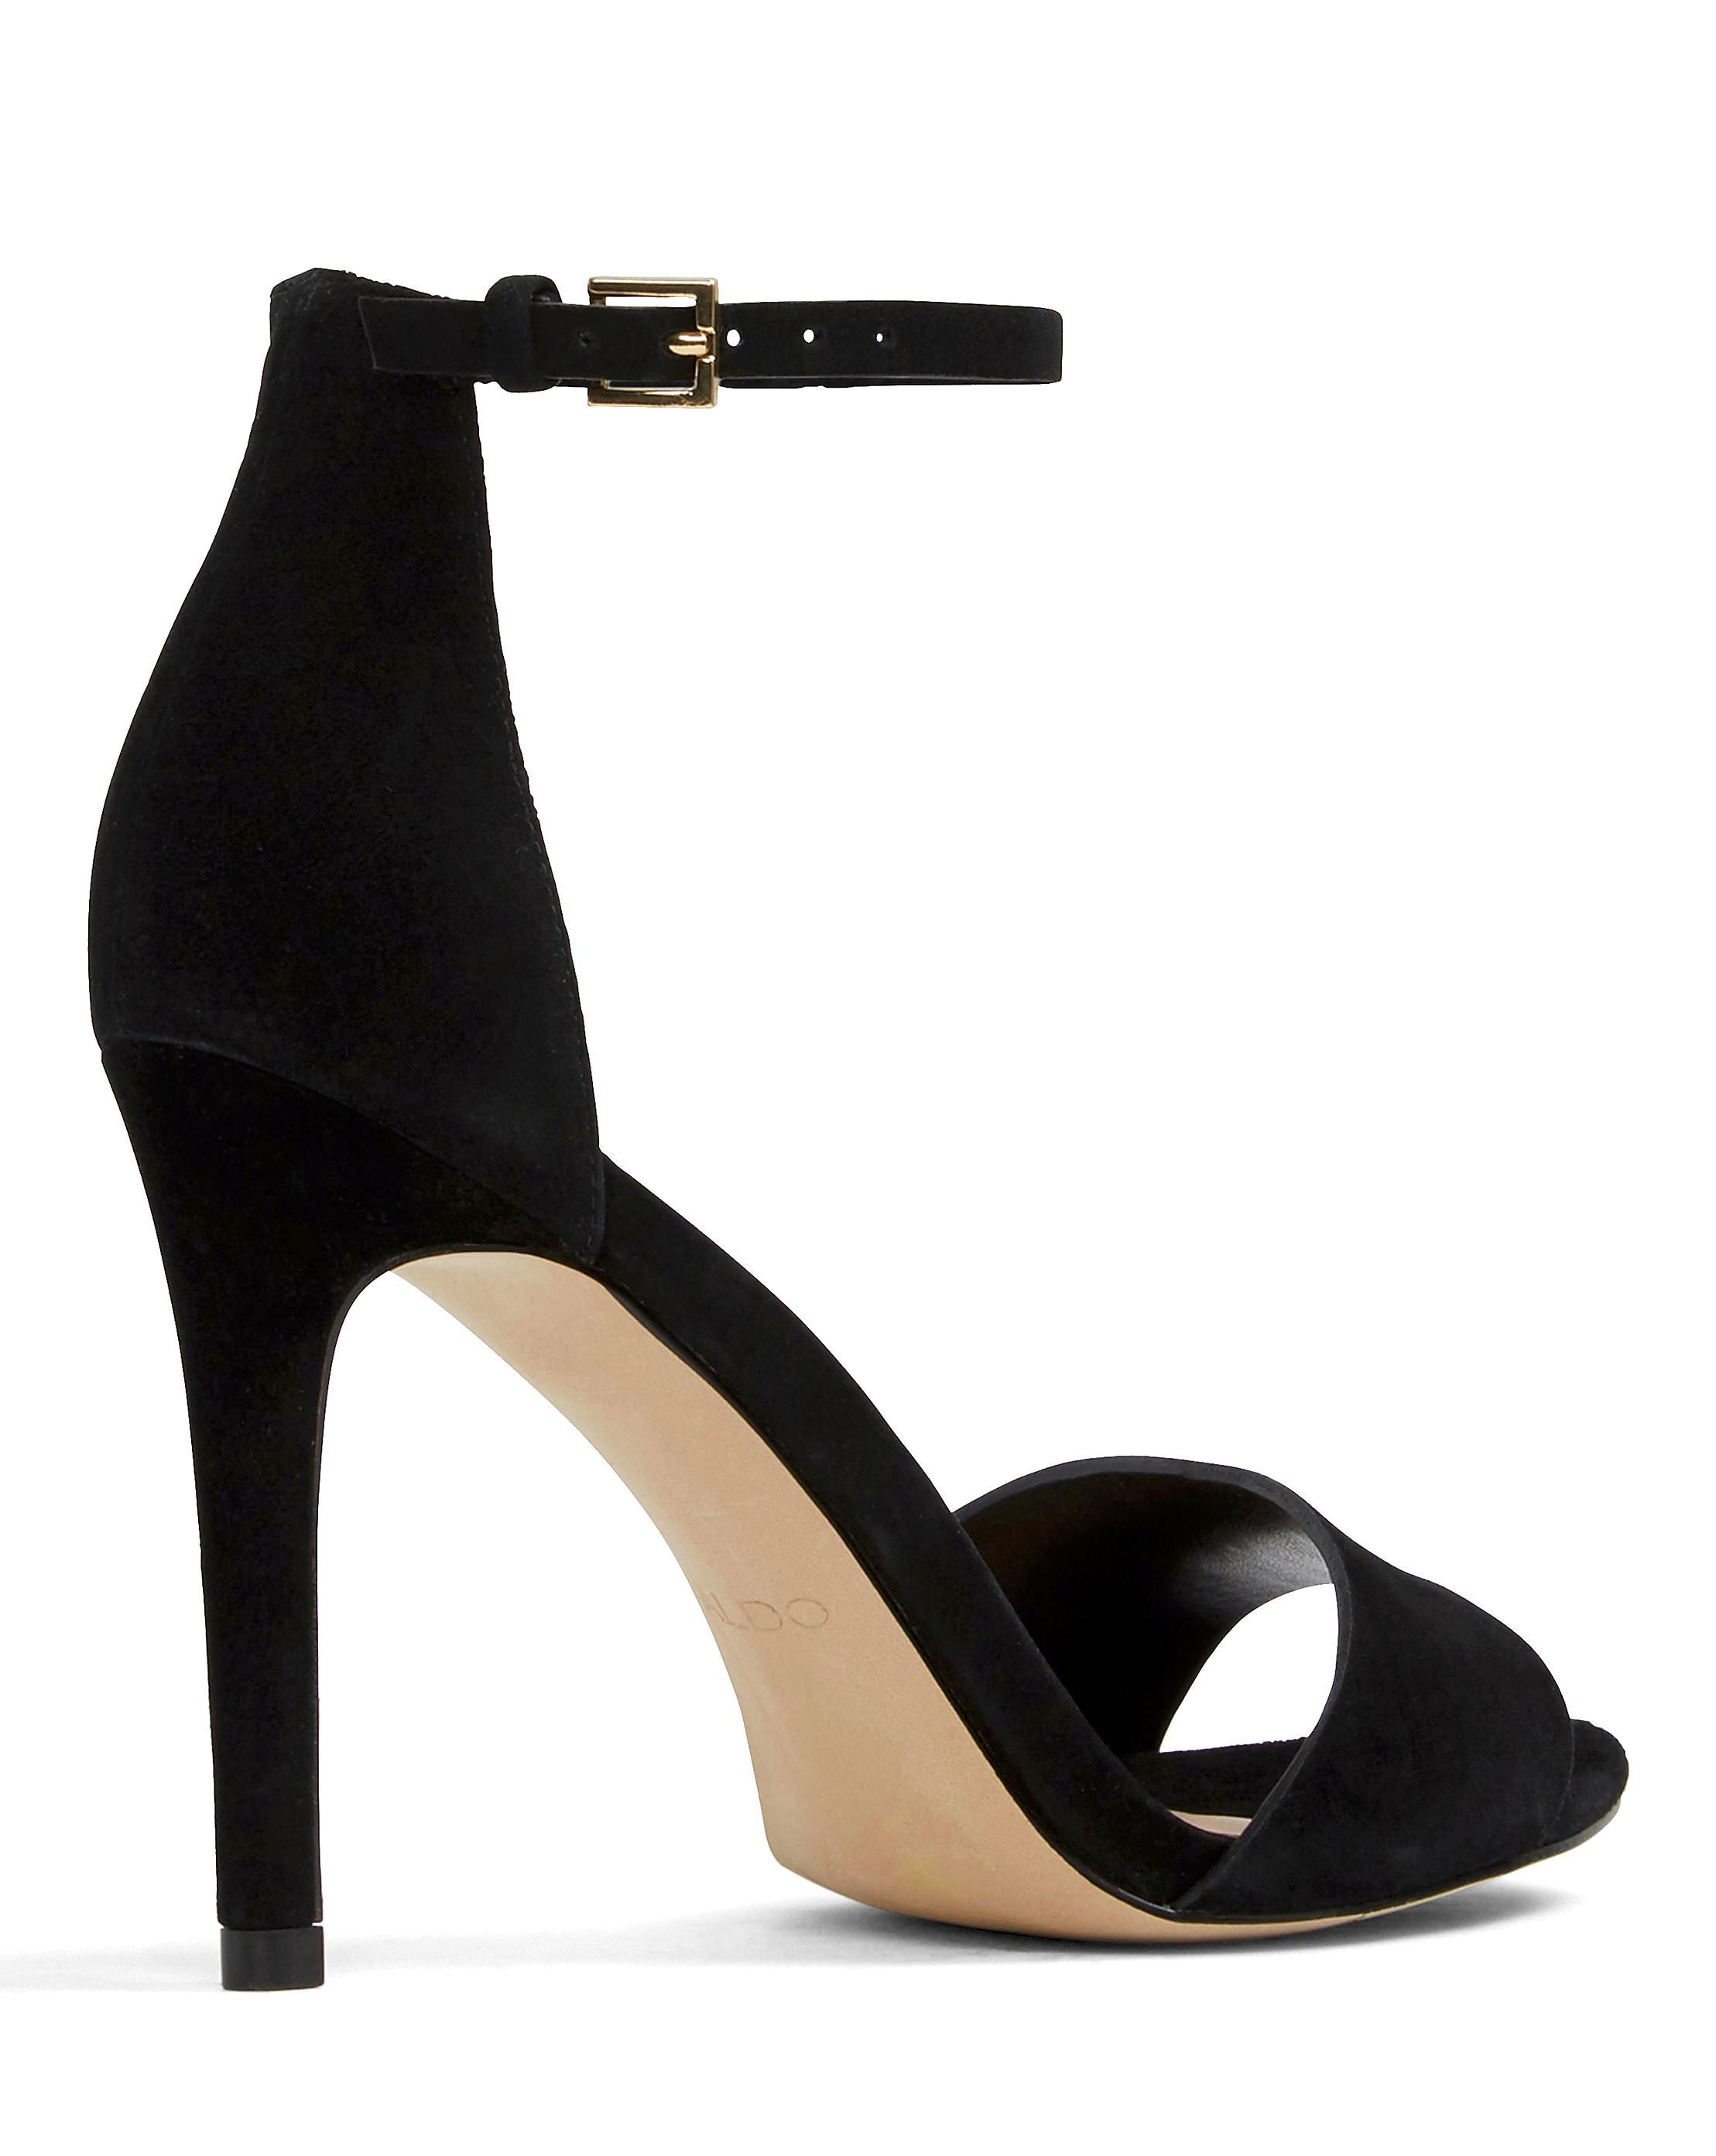 082e39513136 Lyst - Simply Be Aldo Wide Fit Fiolla High Heels in Black